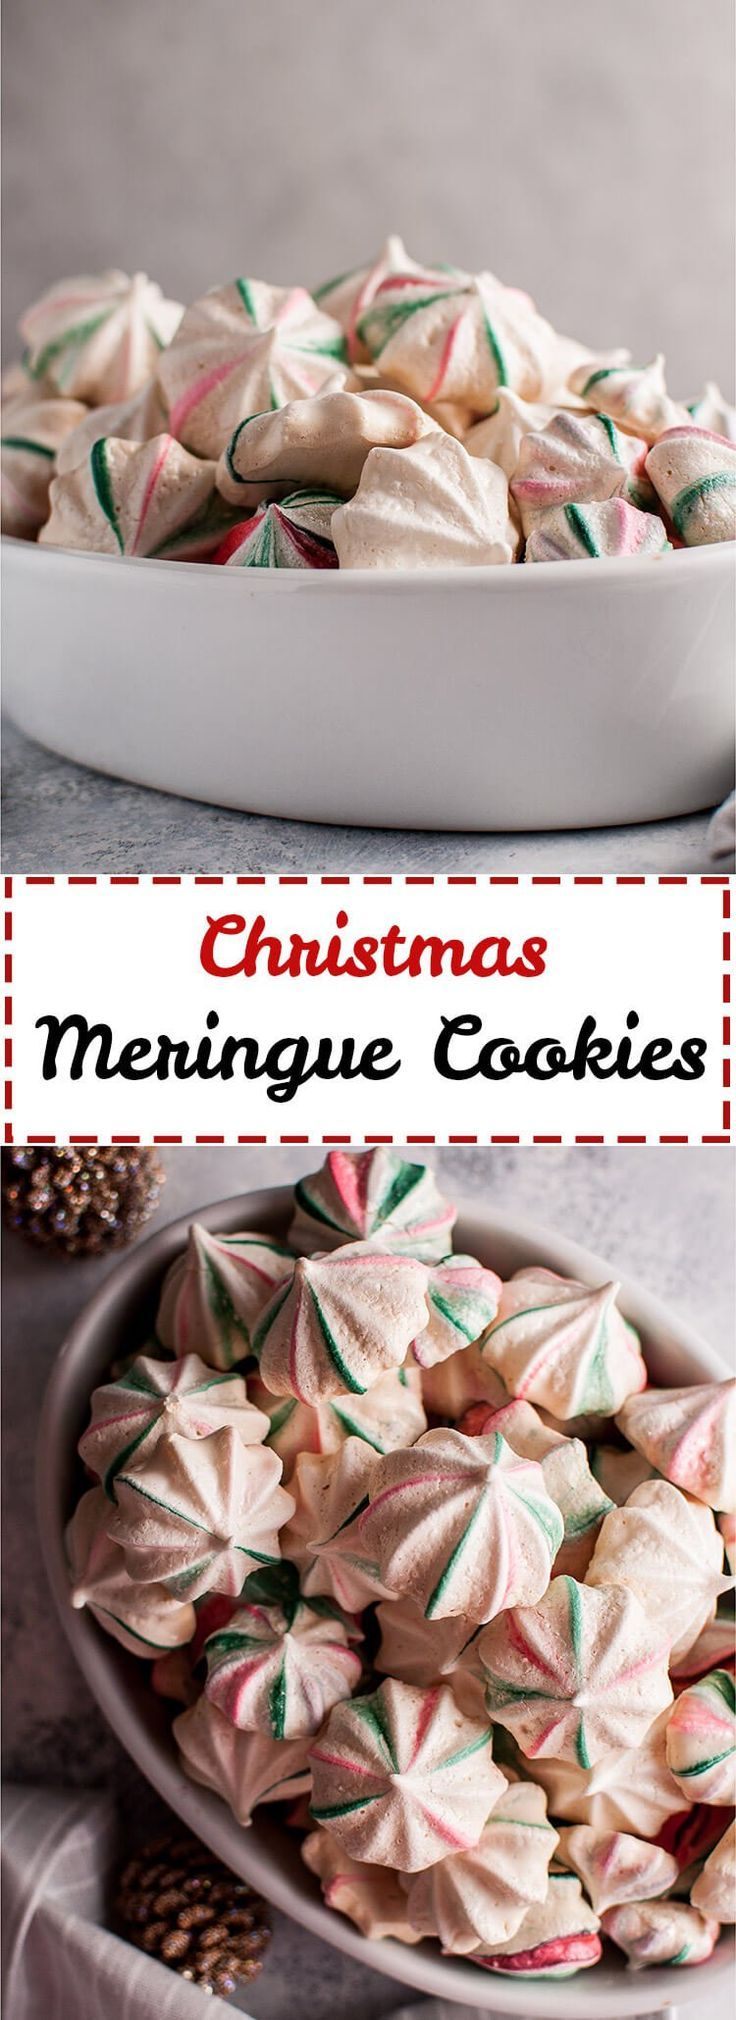 These red and green striped Christmas meringue cookies are light, melt-in-your-mouth, and fun. Flavored with vanilla and almond and swirled with red and green, these sweet treats are extra festive.